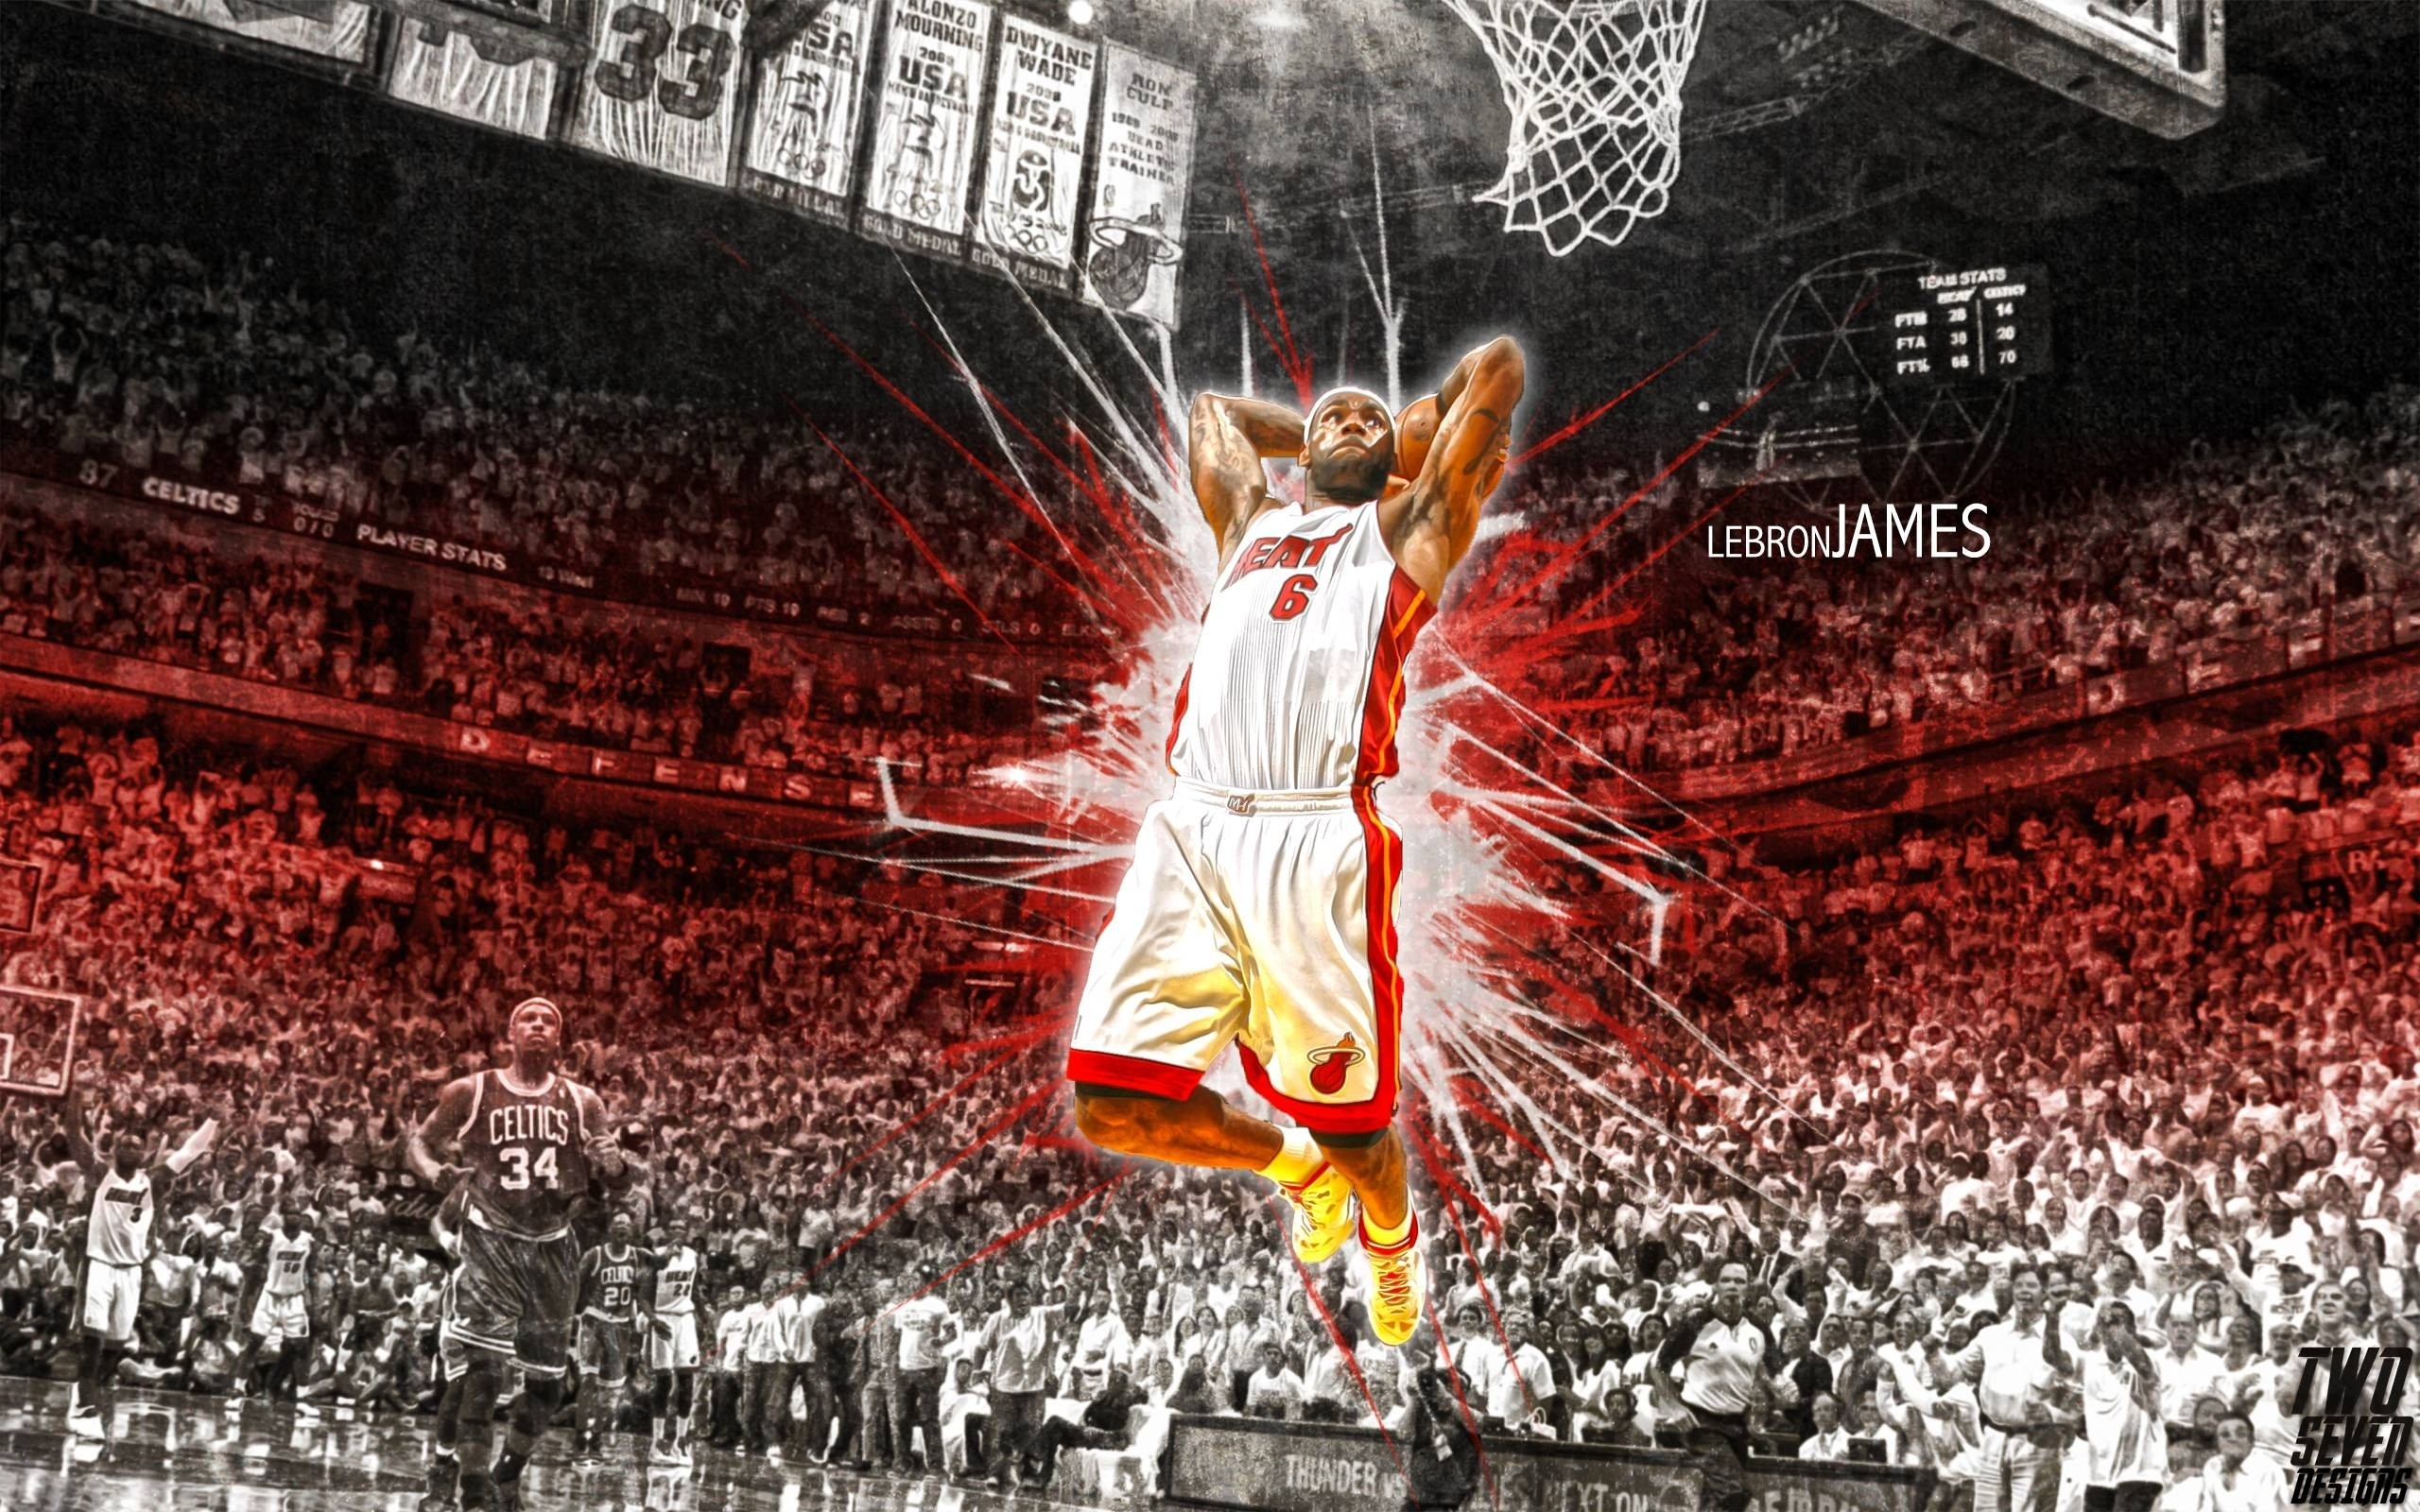 2560x1600 Title : lebron james wallpapers dunk 2015 – wallpaper cave. Dimension :  2560 x 1600. File Type : JPG/JPEG